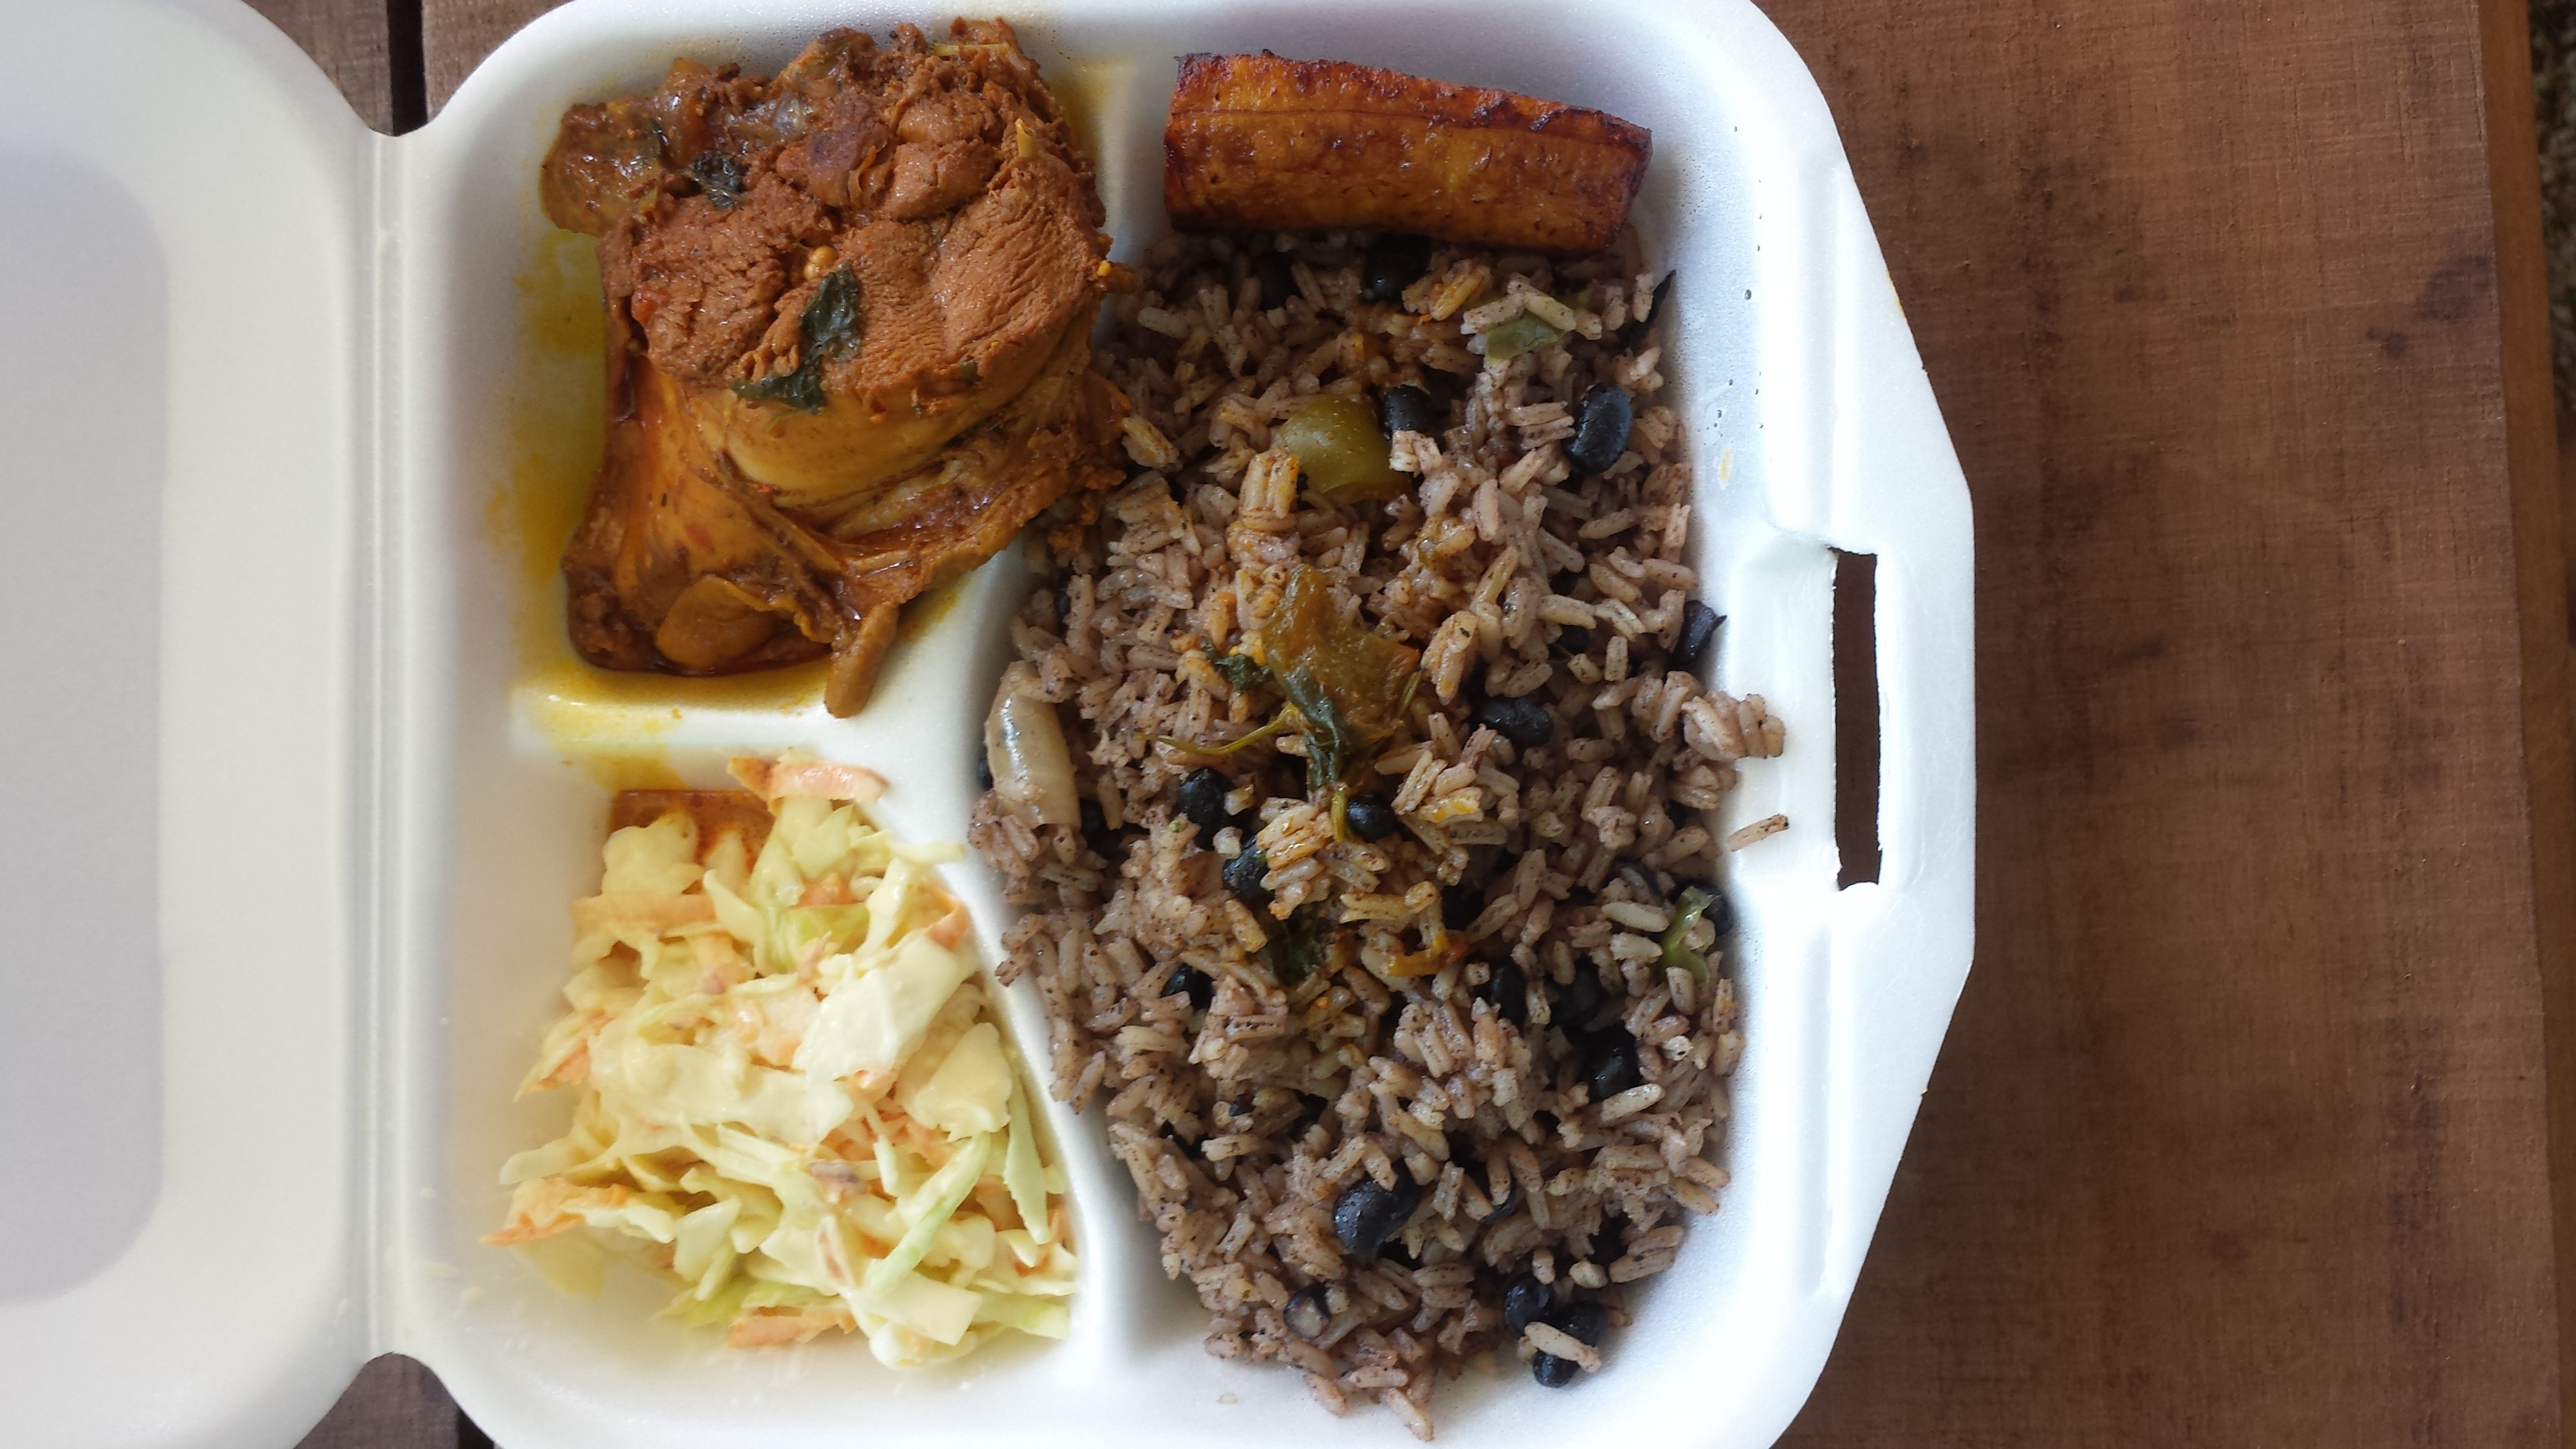 Jerk chicken with coleslaw and red beans & rice